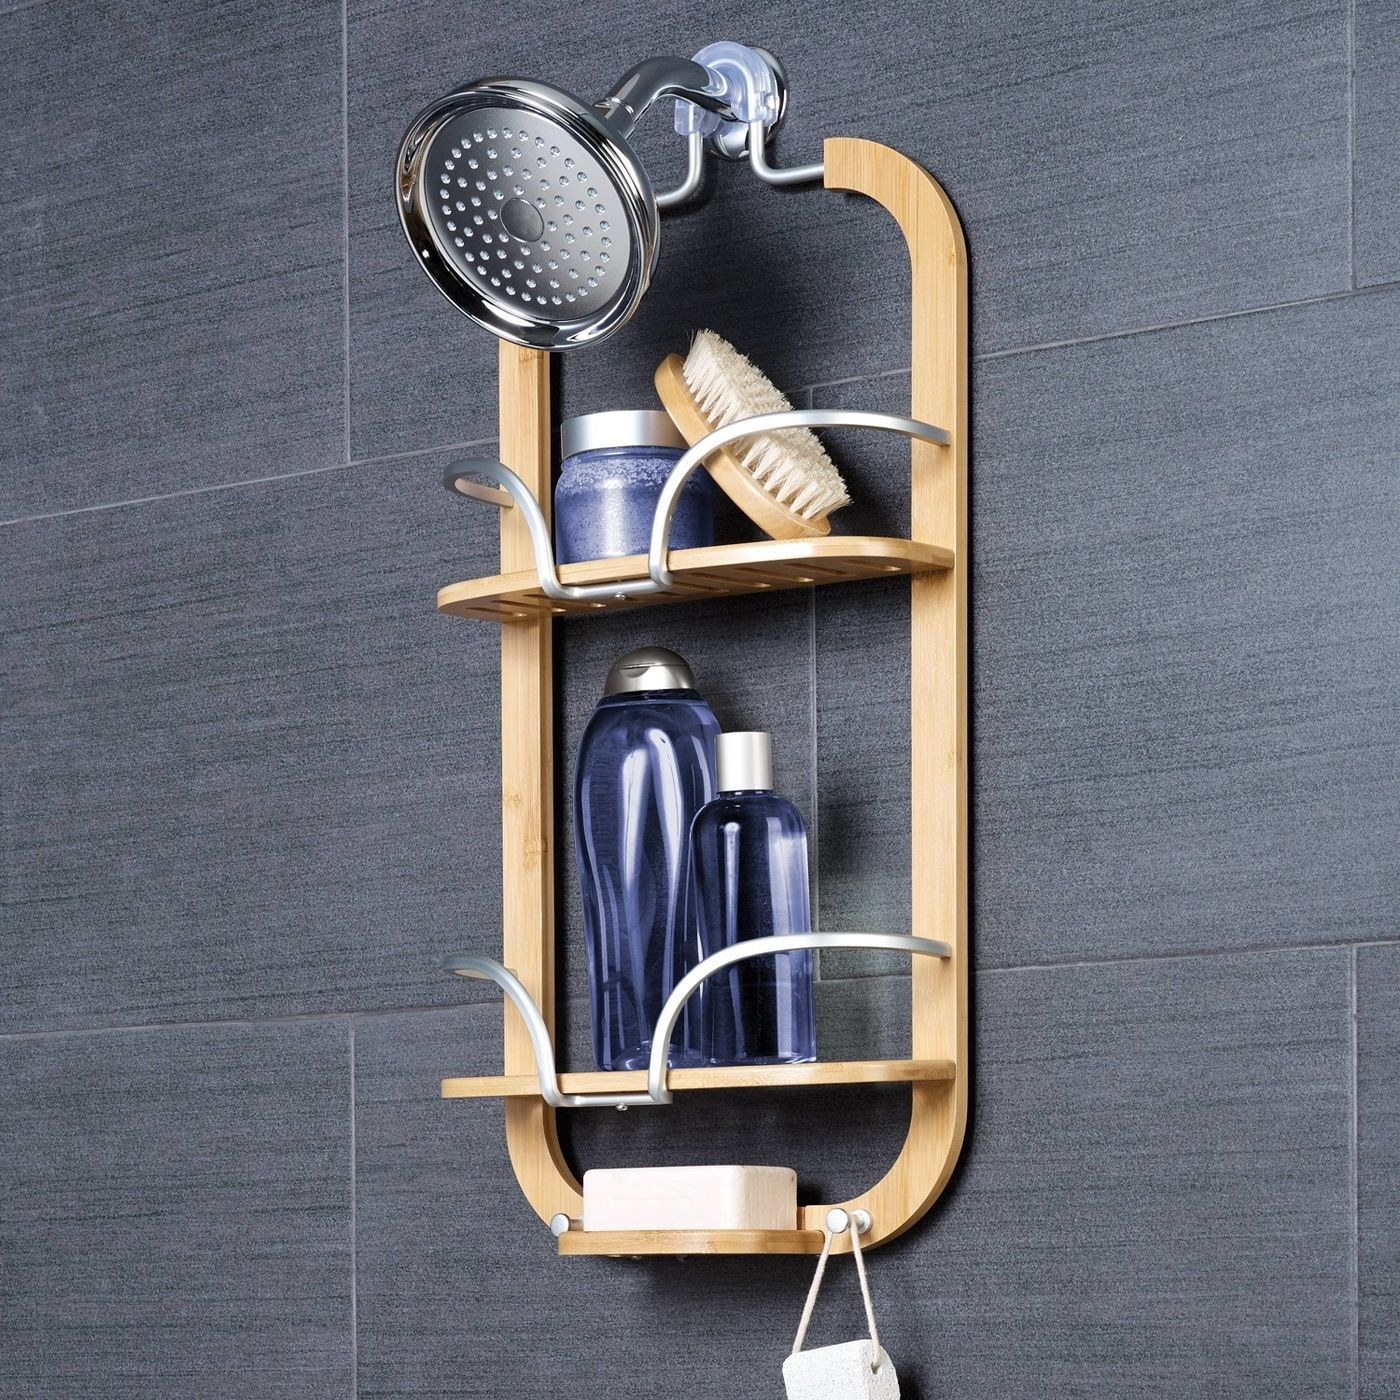 a bamboo and metal shower caddy hanging on a shower head